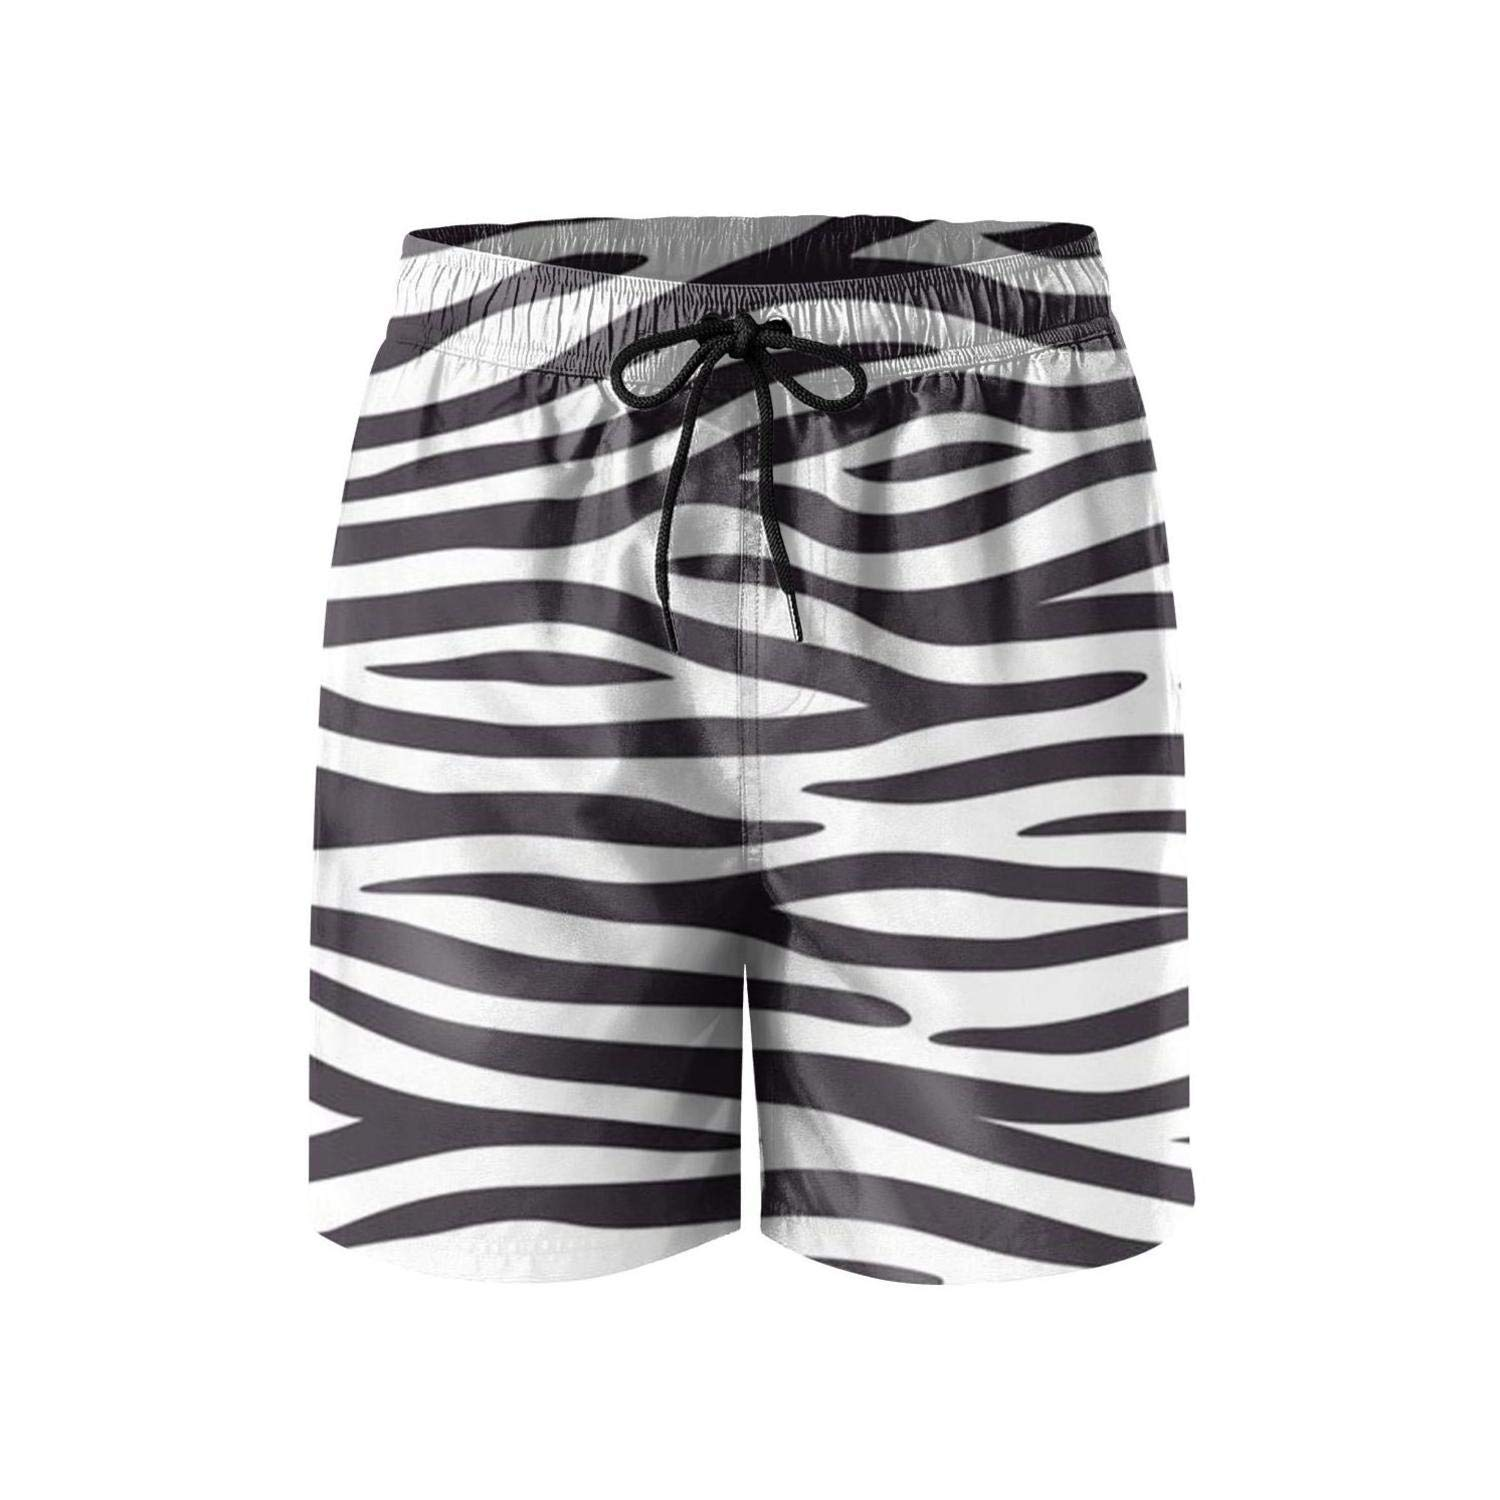 MIPU SHANGMAO Mens Lovely Frogs Summer Beach Shorts Leisure Quick Dry Swimming Pants